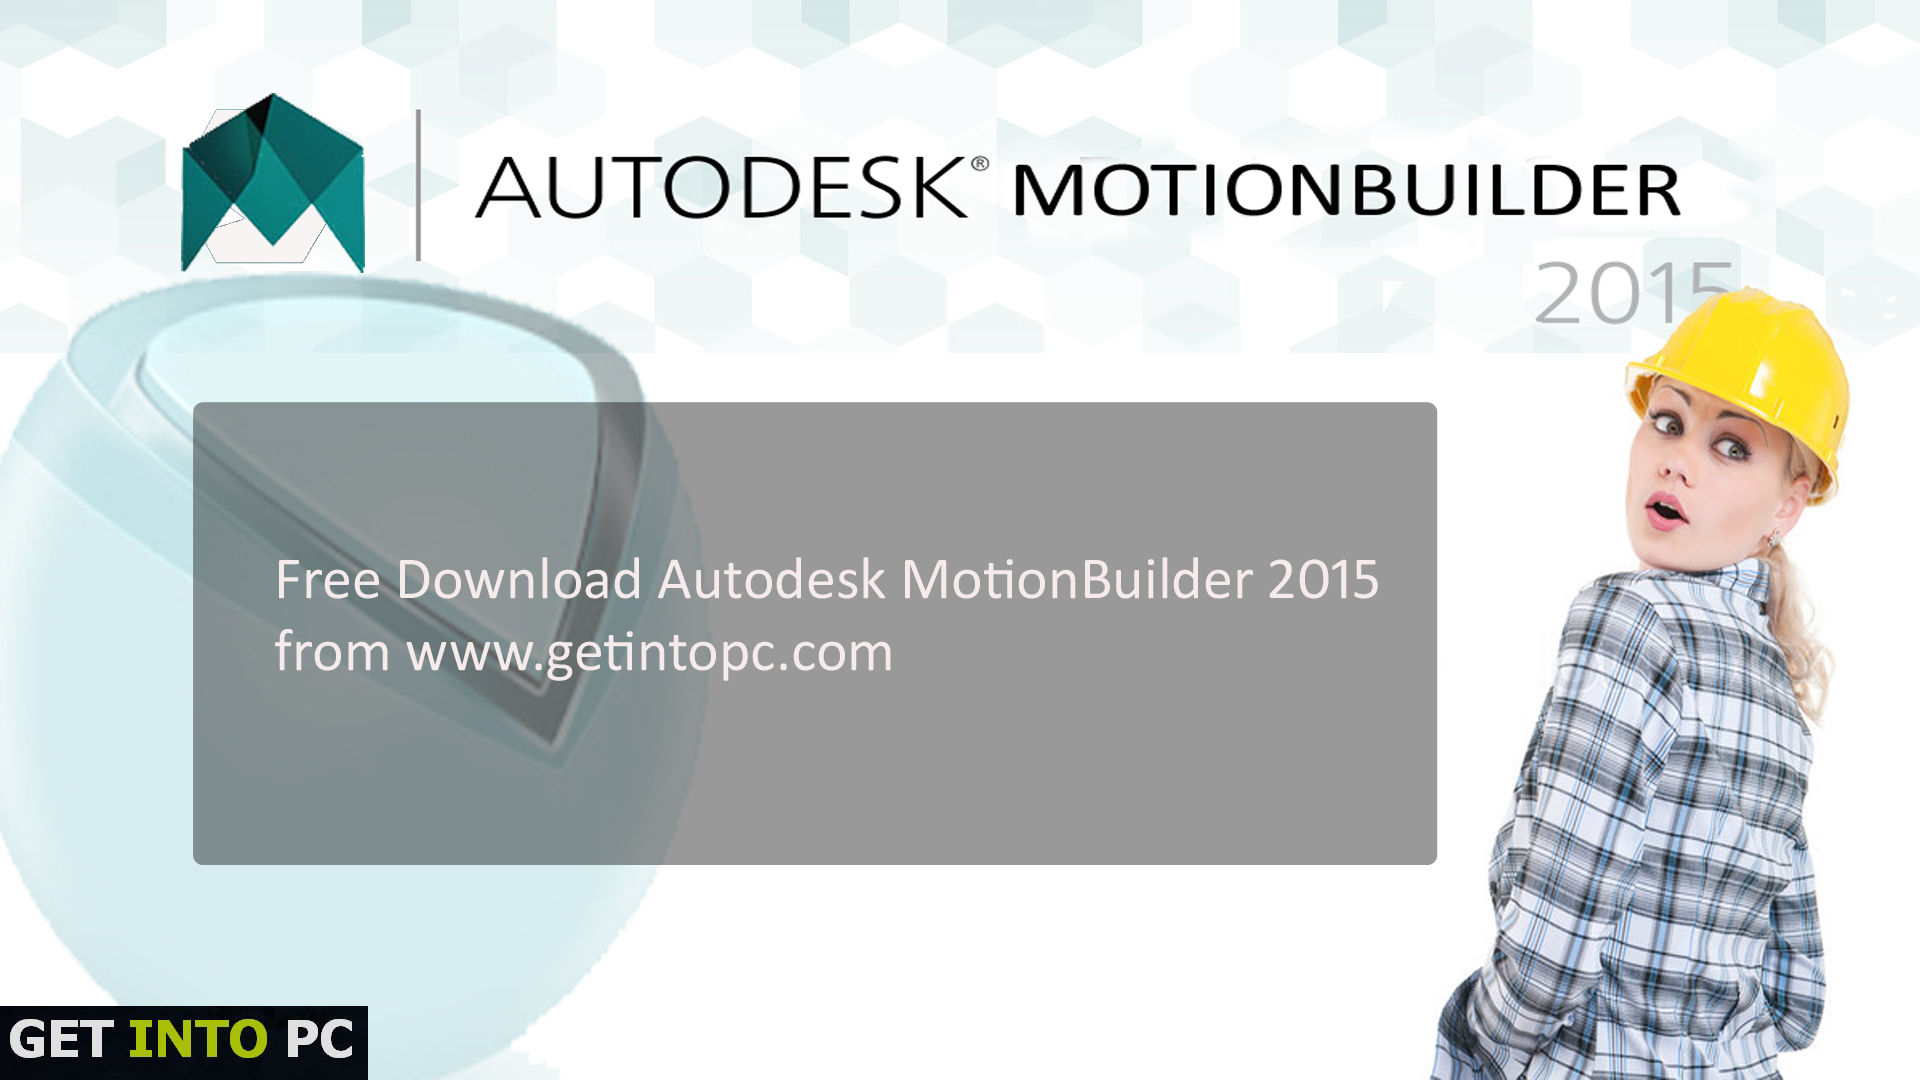 Autodesk MotionBuilder setup Free download